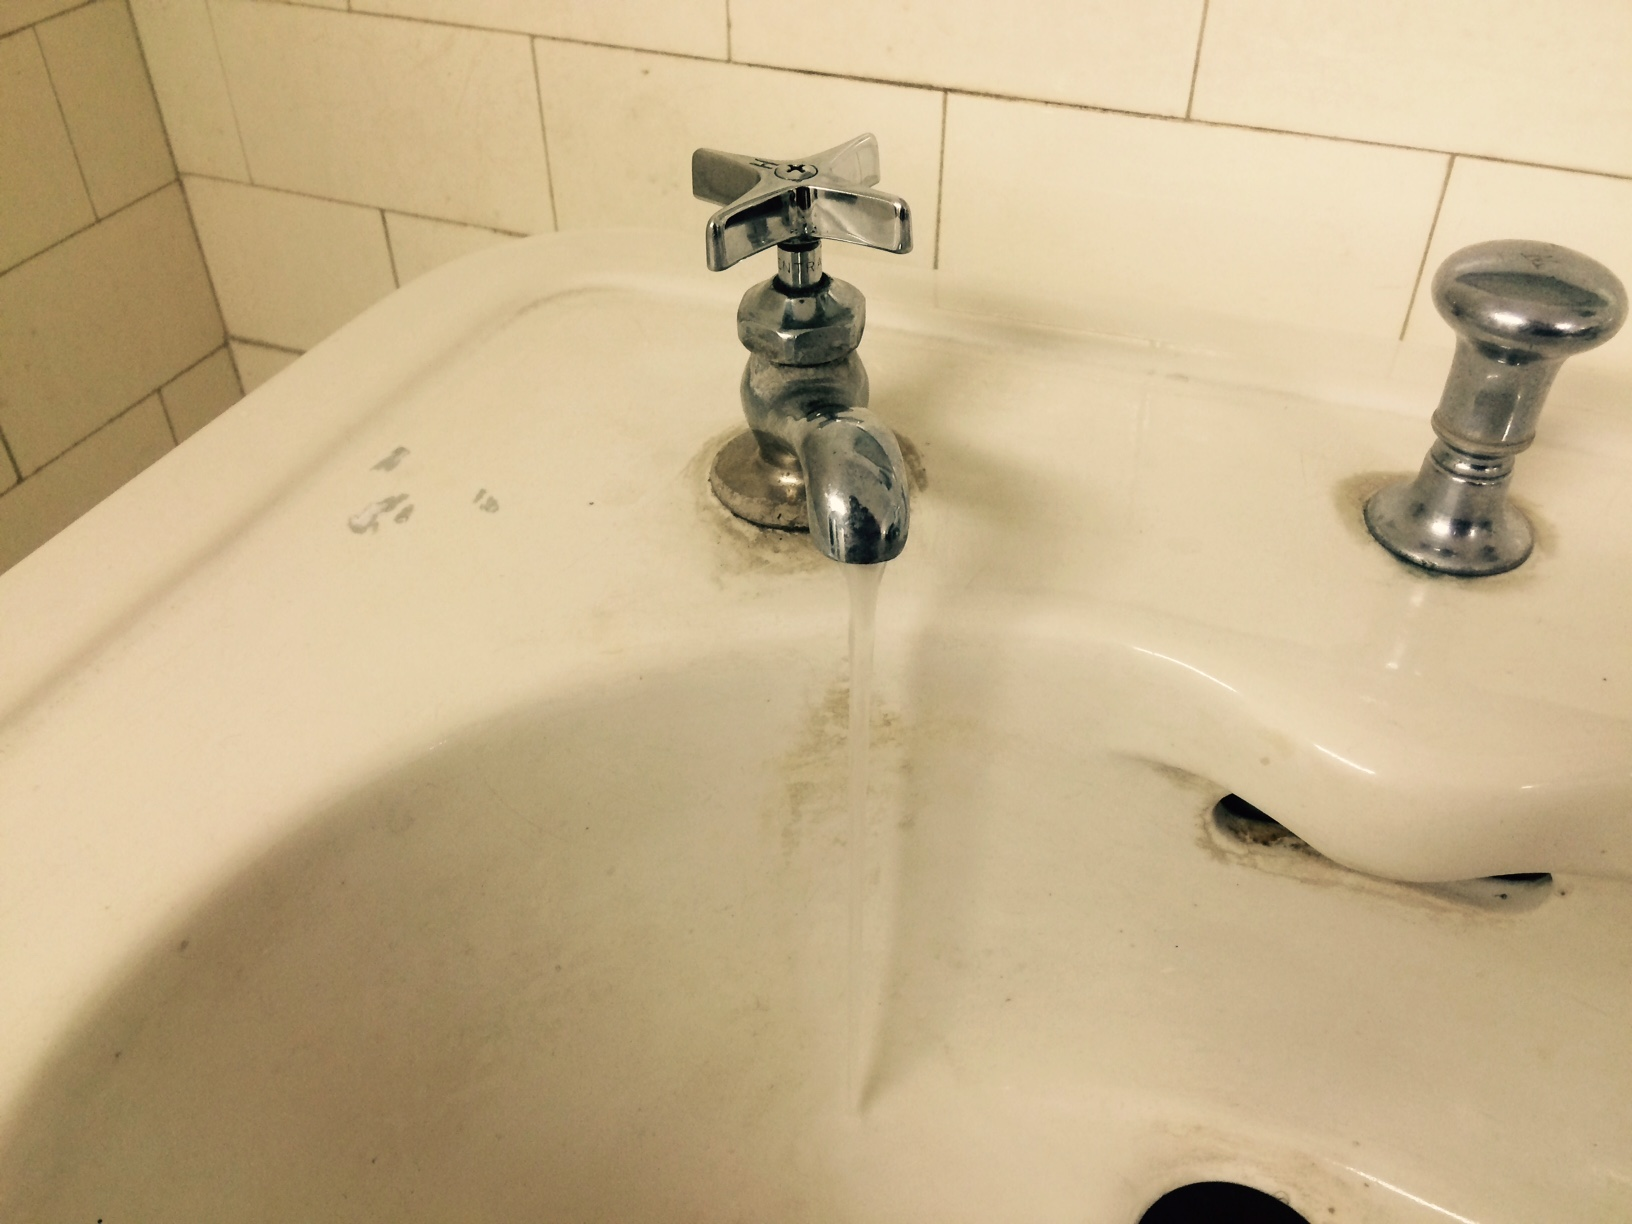 Village of Alden residents want Erie County water, but paying for it is an issue